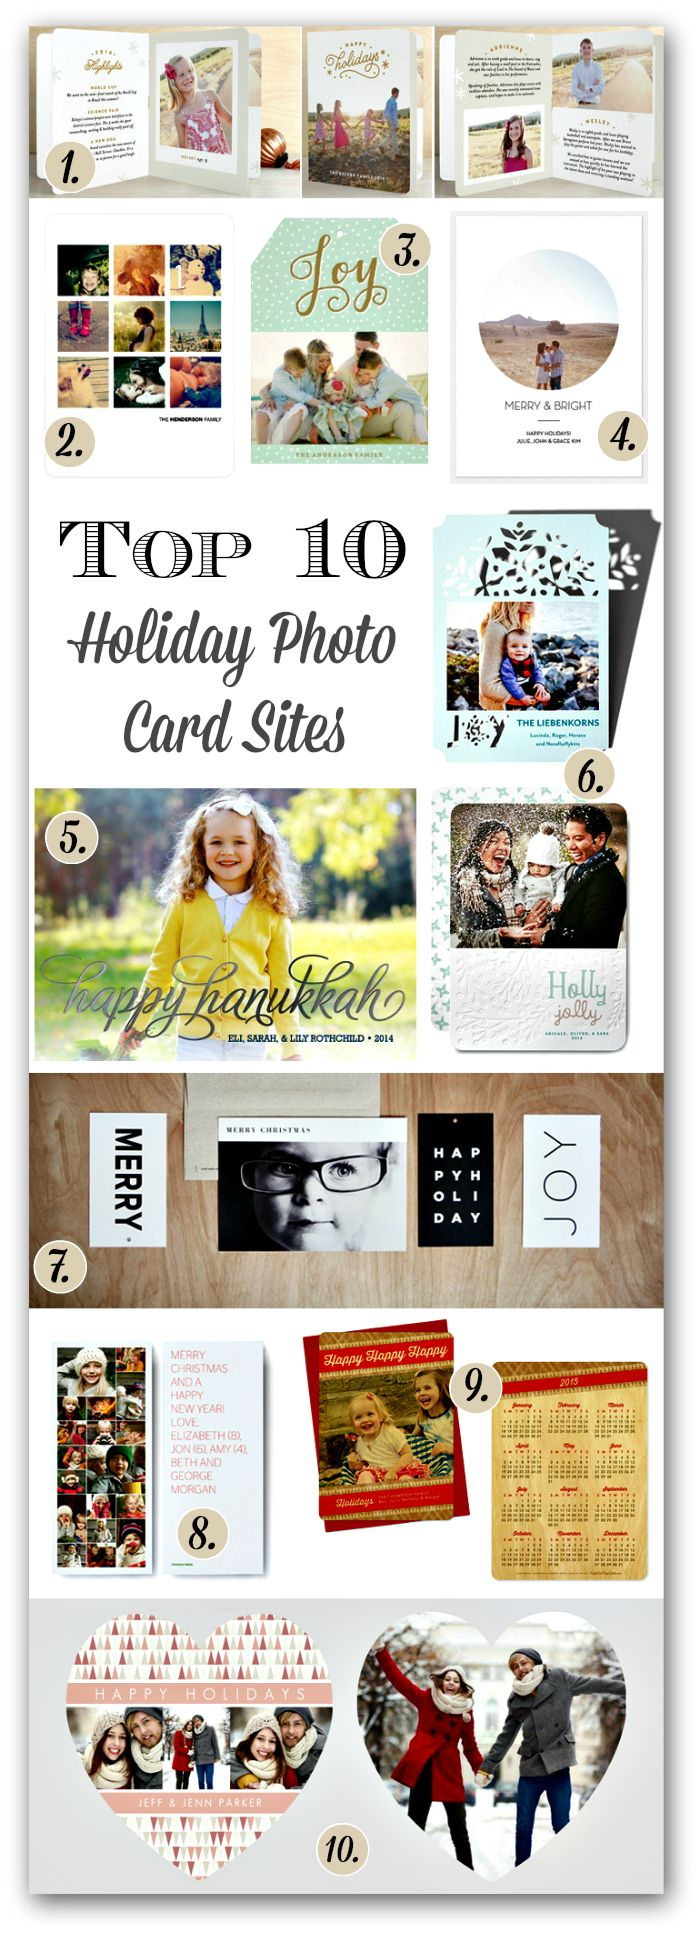 Michaels coupon money saving mom 174 - 10 Great Holiday Photo Card Sites To Check Out